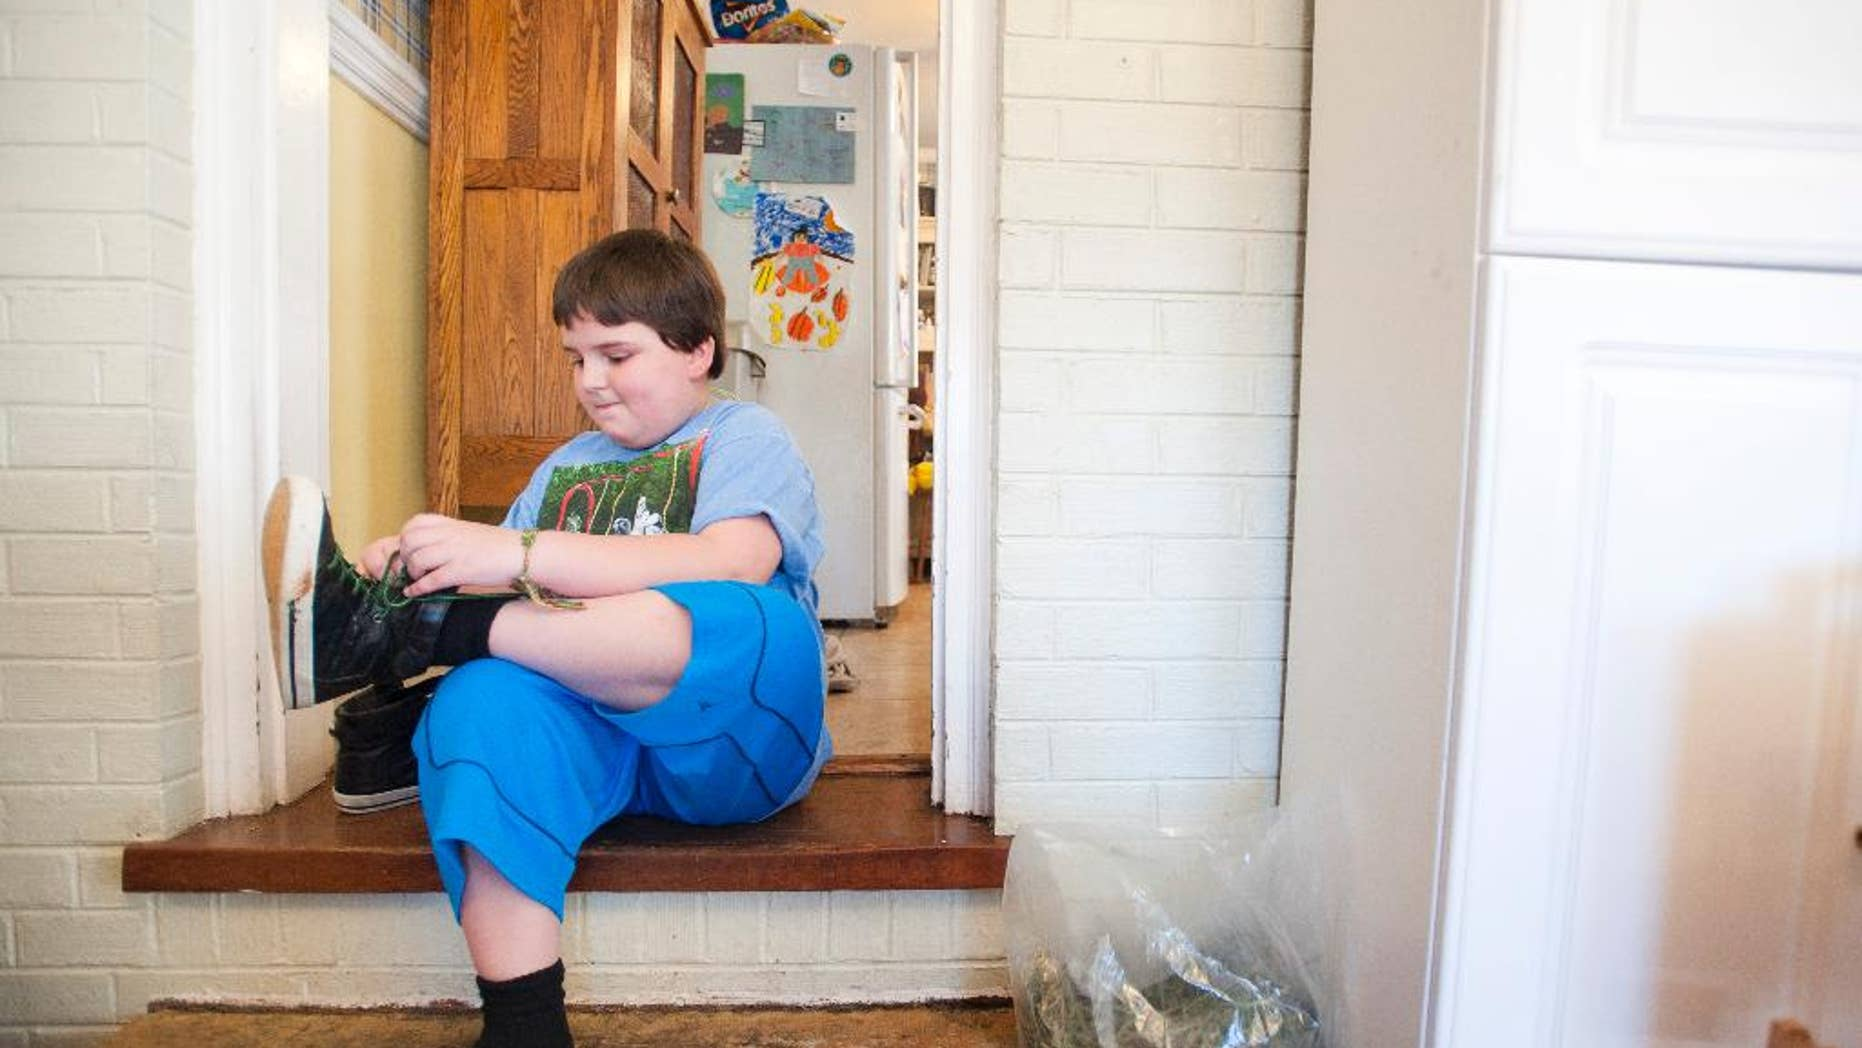 Sunnie Kahle, 8, puts on her shoes before leaving her home in Forest, Va. on March 26, 2014.  Kahle recently withdrew from Timberlake Christian School in Forest, Va. after the school sent a letter asking her to either dress and act more feminine or not enroll again because she looked too much like a boy. (AP Photo/The News & Advance, Jill Nance)